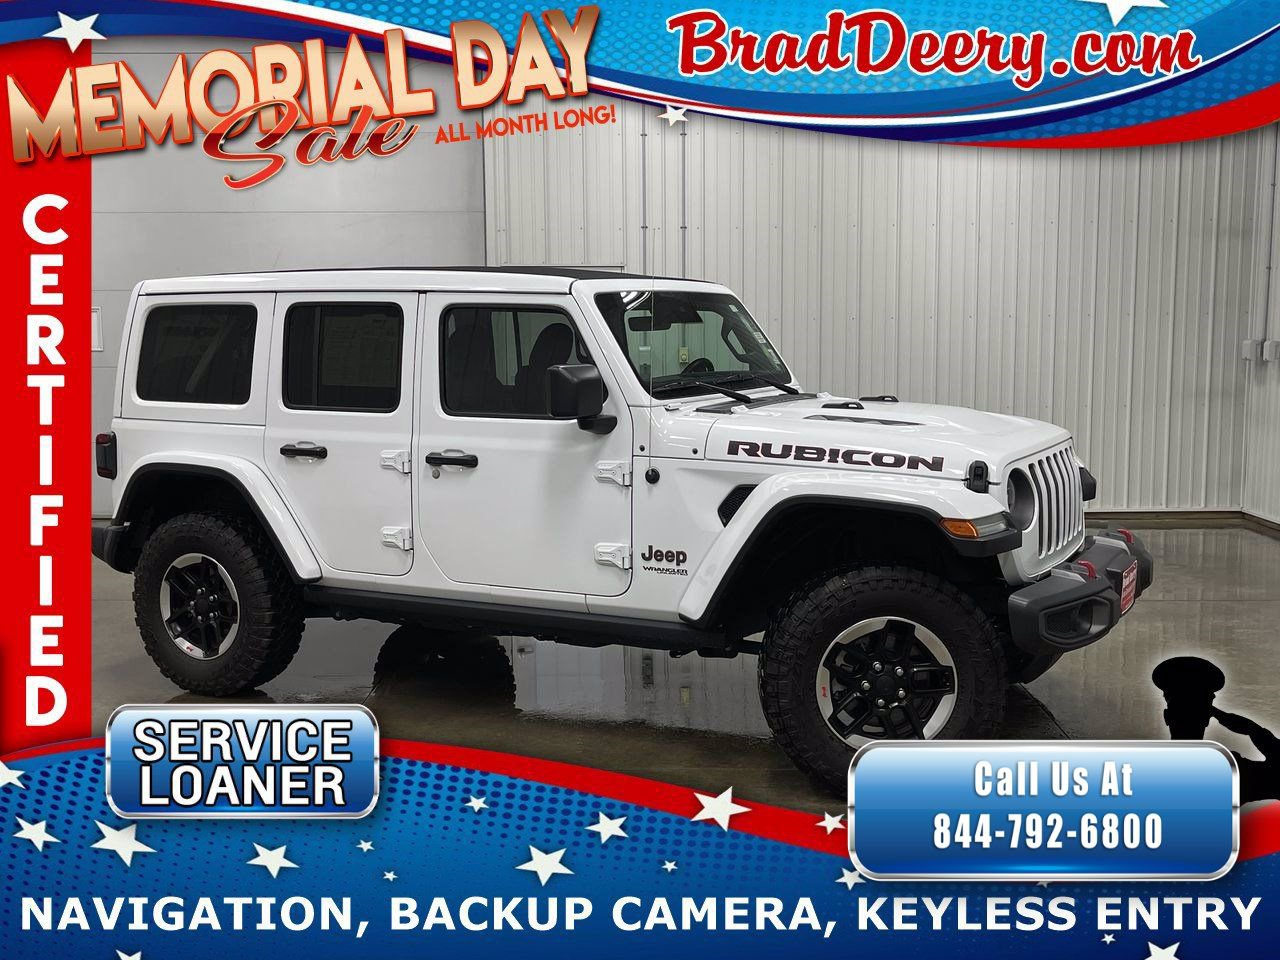 2020 Jeep Wrangler Unlimited 4-Door Rubicon 4X4  **JEEP CERTIFIED** w/ Sky One-Touch Power Top, Leather, Navigation & Safety Group